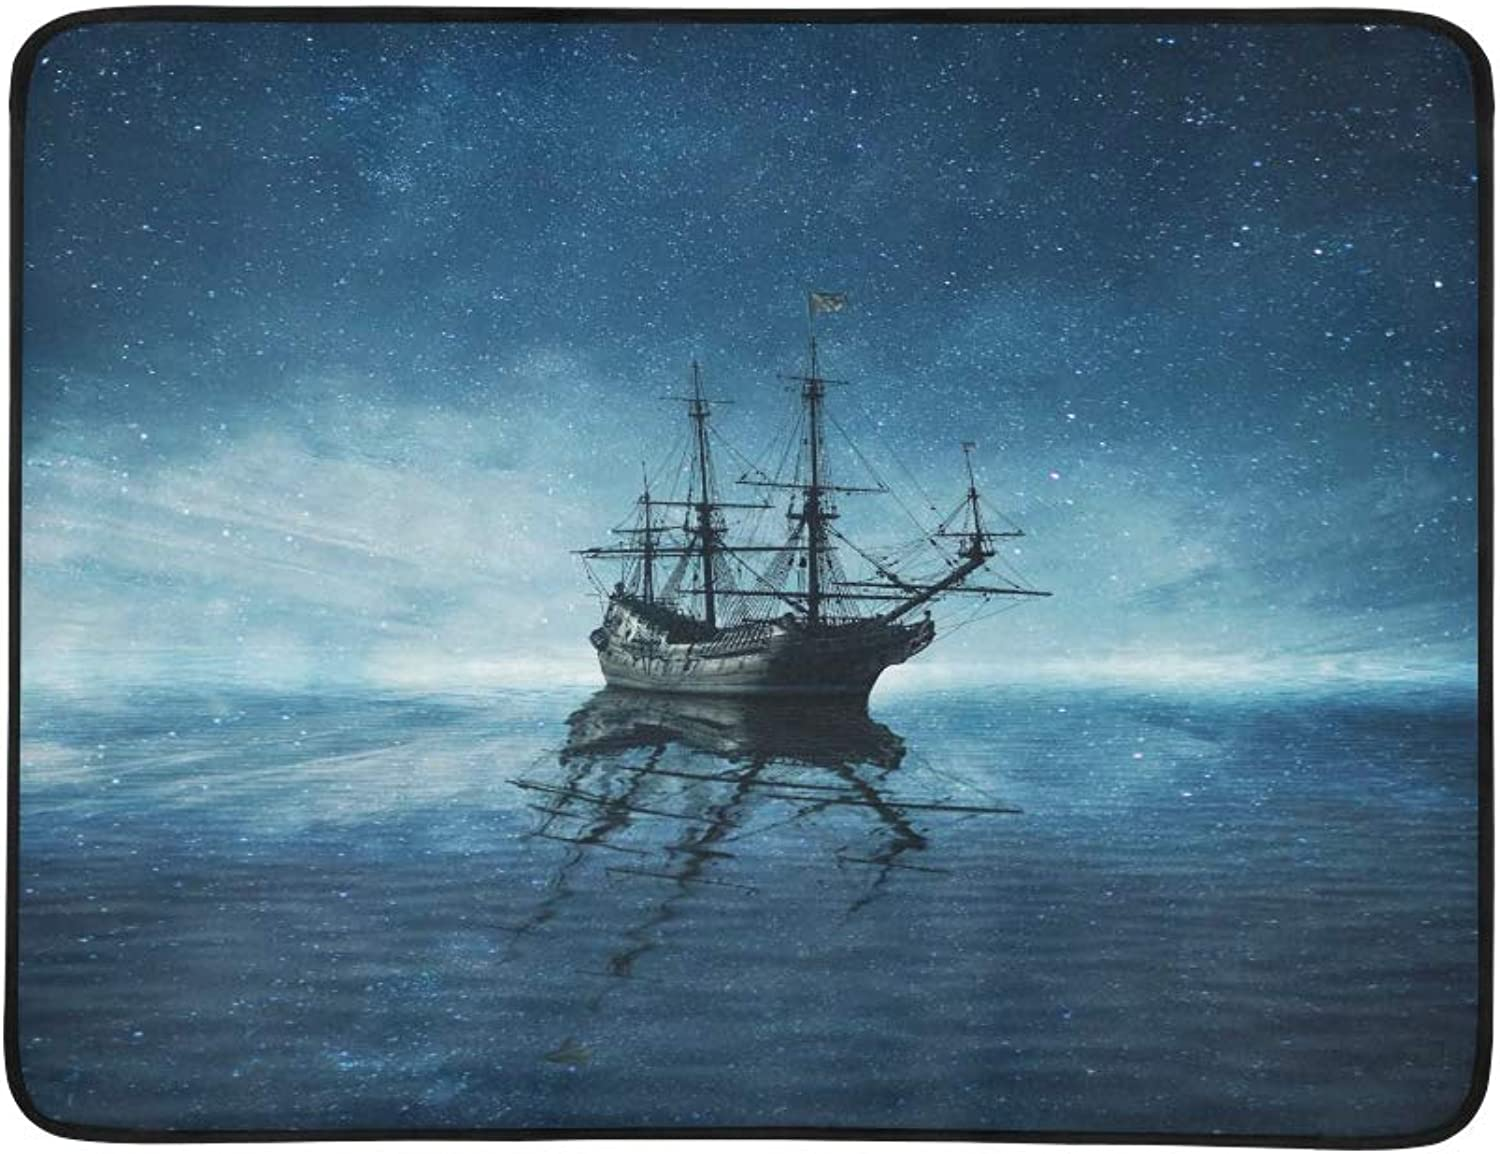 A Ghost Pirate Ship Floating On A Cold Dark blueee S Pattern Portable and Foldable Blanket Mat 60x78 Inch Handy Mat for Camping Picnic Beach Indoor Outdoor Travel